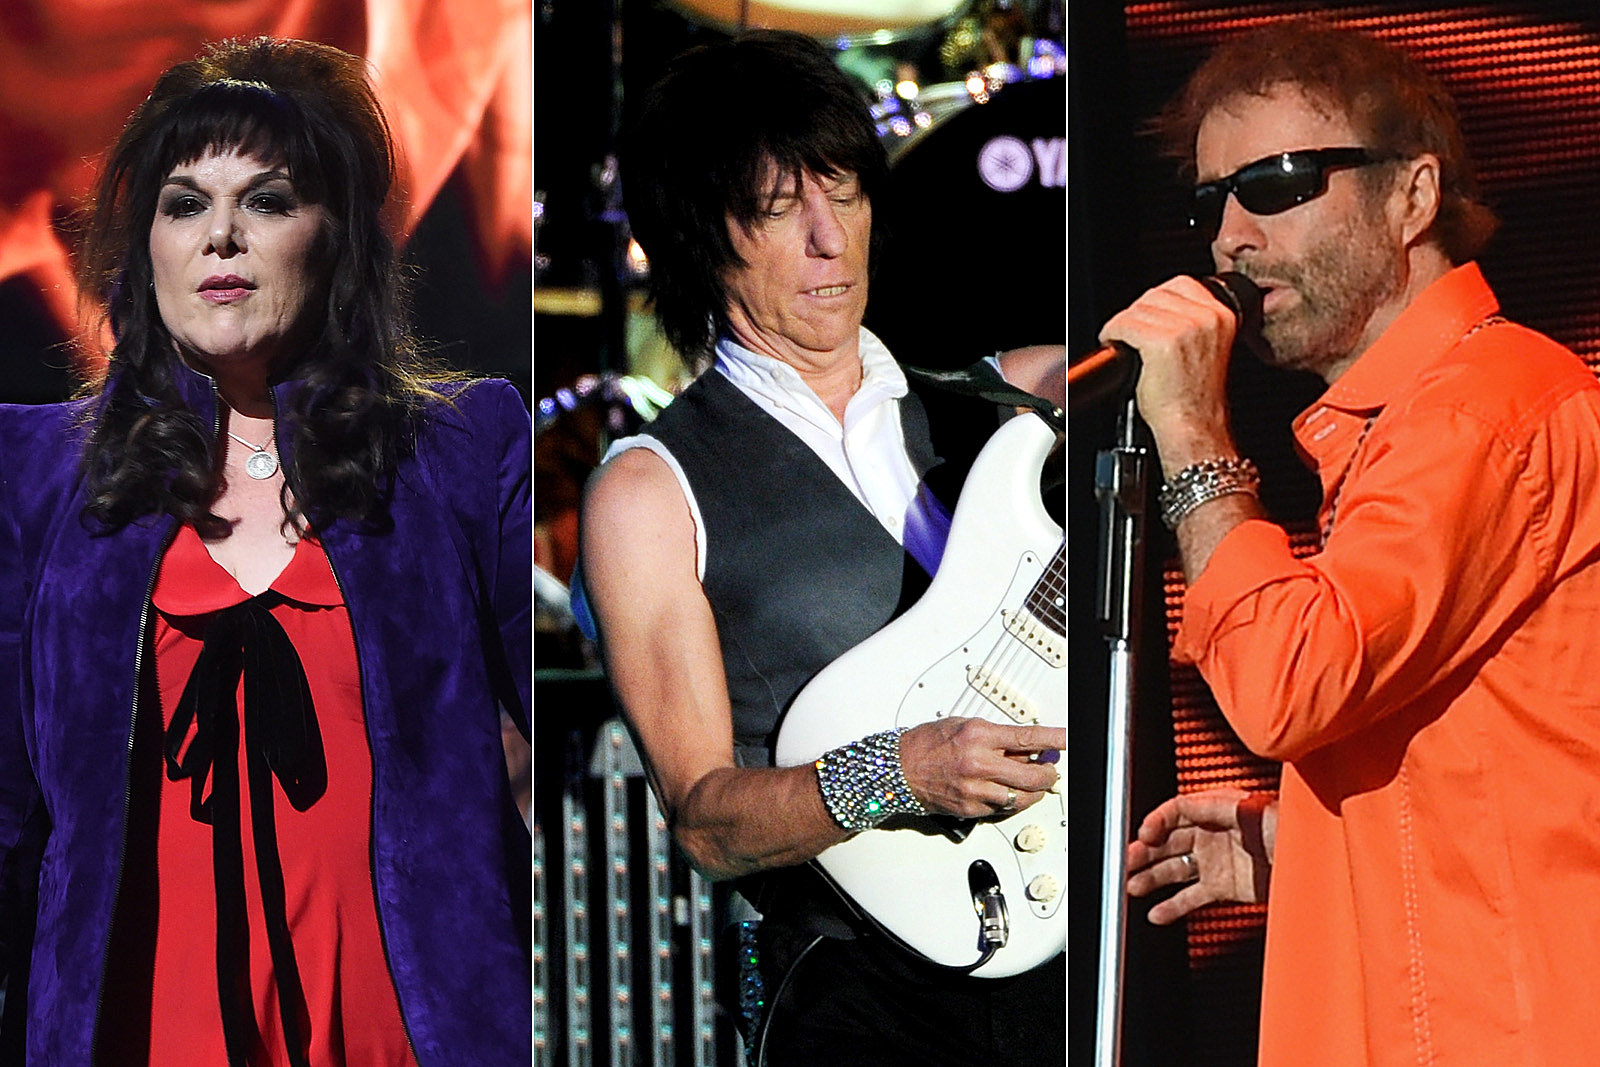 Jeff Beck, Paul Rodgers and Ann Willson Kick Off 'Stars Align' Tour: Set…